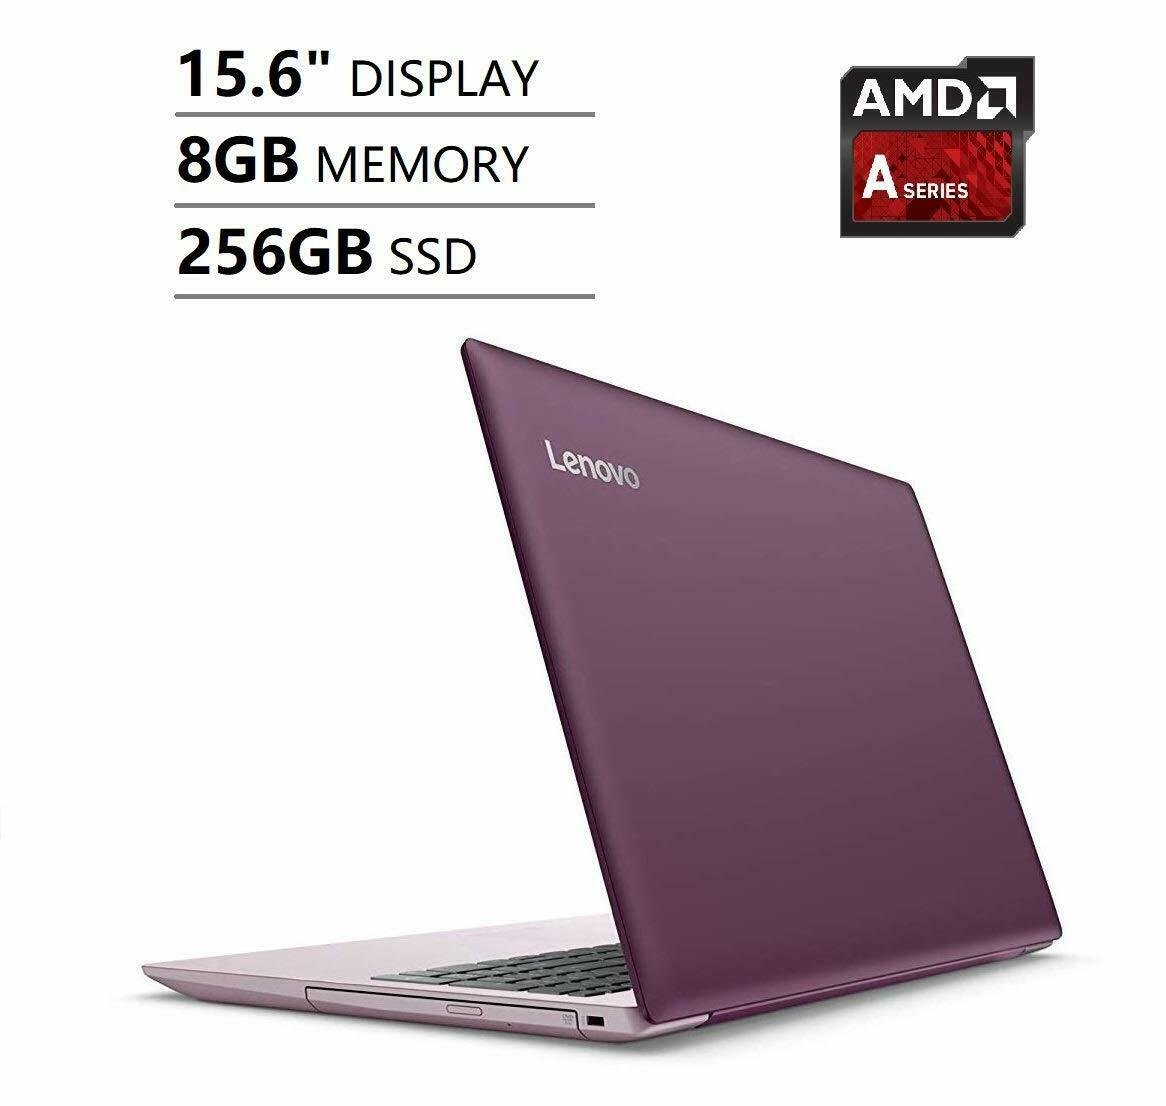 Lenovo IdeaPad HD 15.6 Dual Core 3.10GHz 256GB SSD 8GB RAM Windows 10 Plum